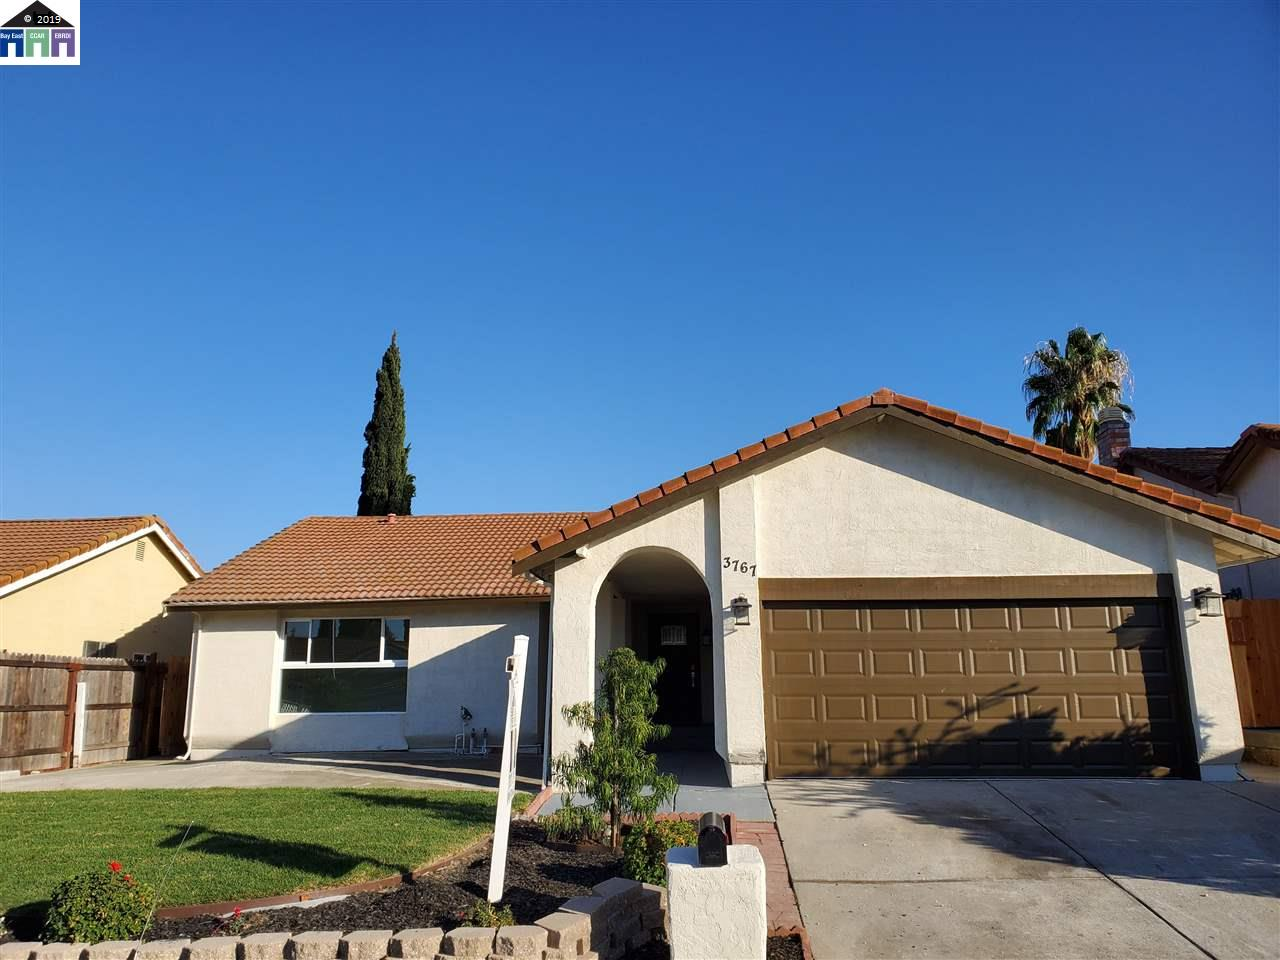 3767 Park Place Dr. Pittsburg, CA 94565